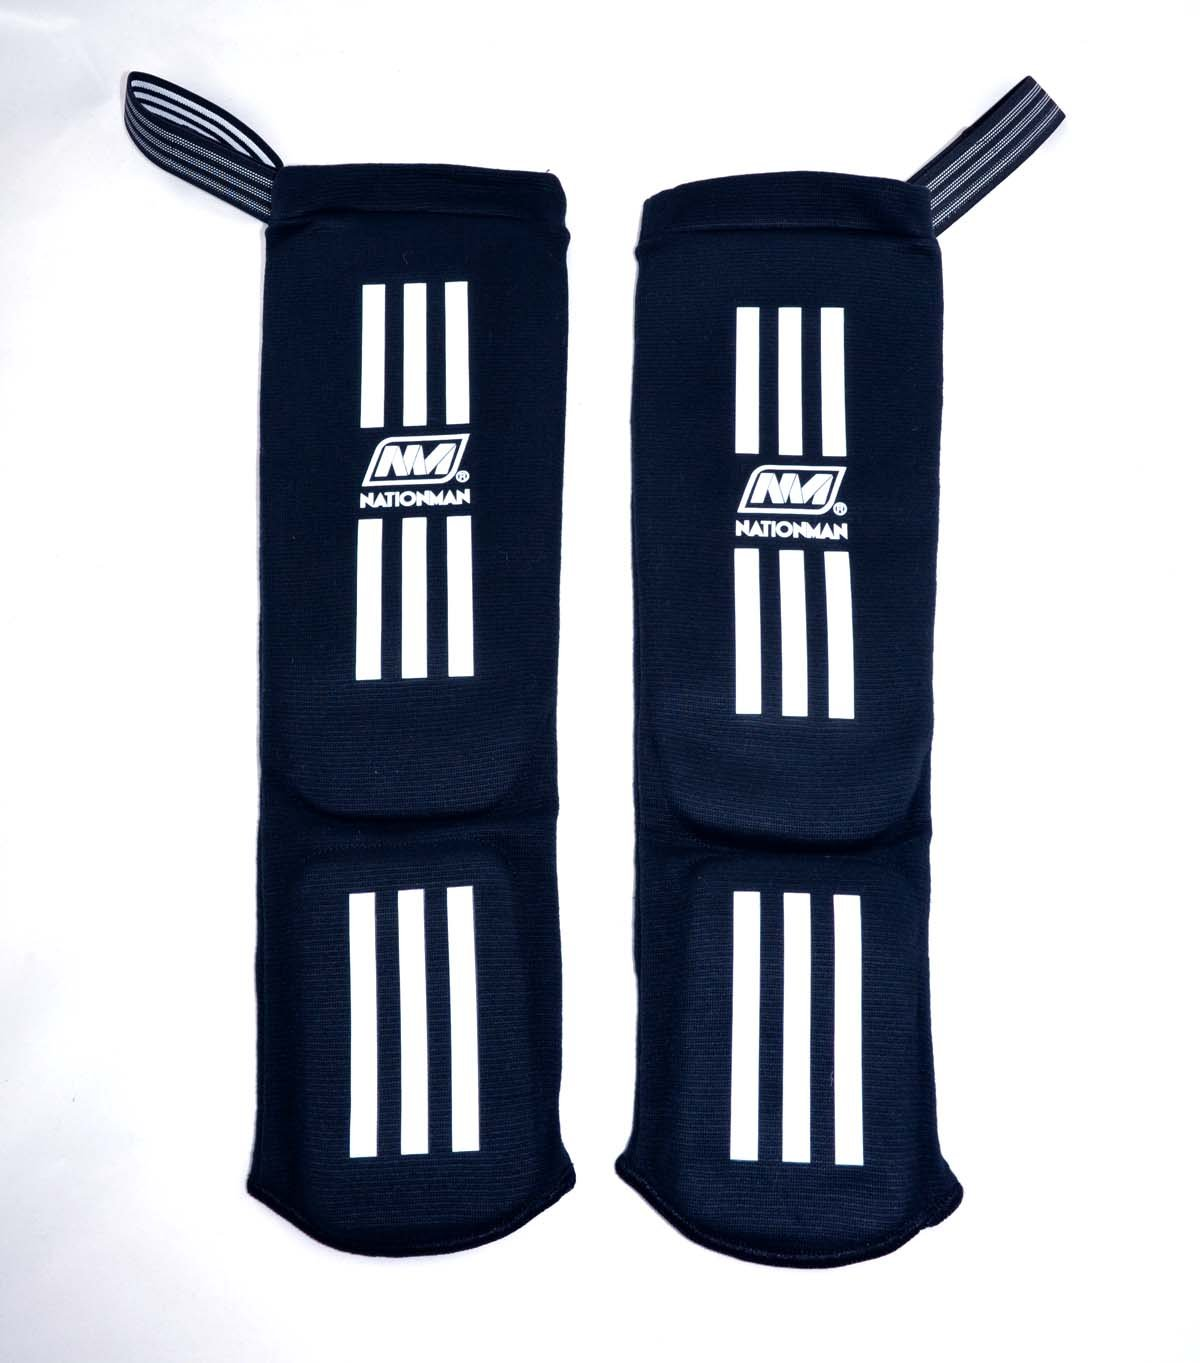 (Blue) - Nationman Muay Thai - Boxing Shin Shin protectors : Nationman Blue B007Q12ACM, ファランセビス:7cb1112d --- capela.dominiotemporario.com